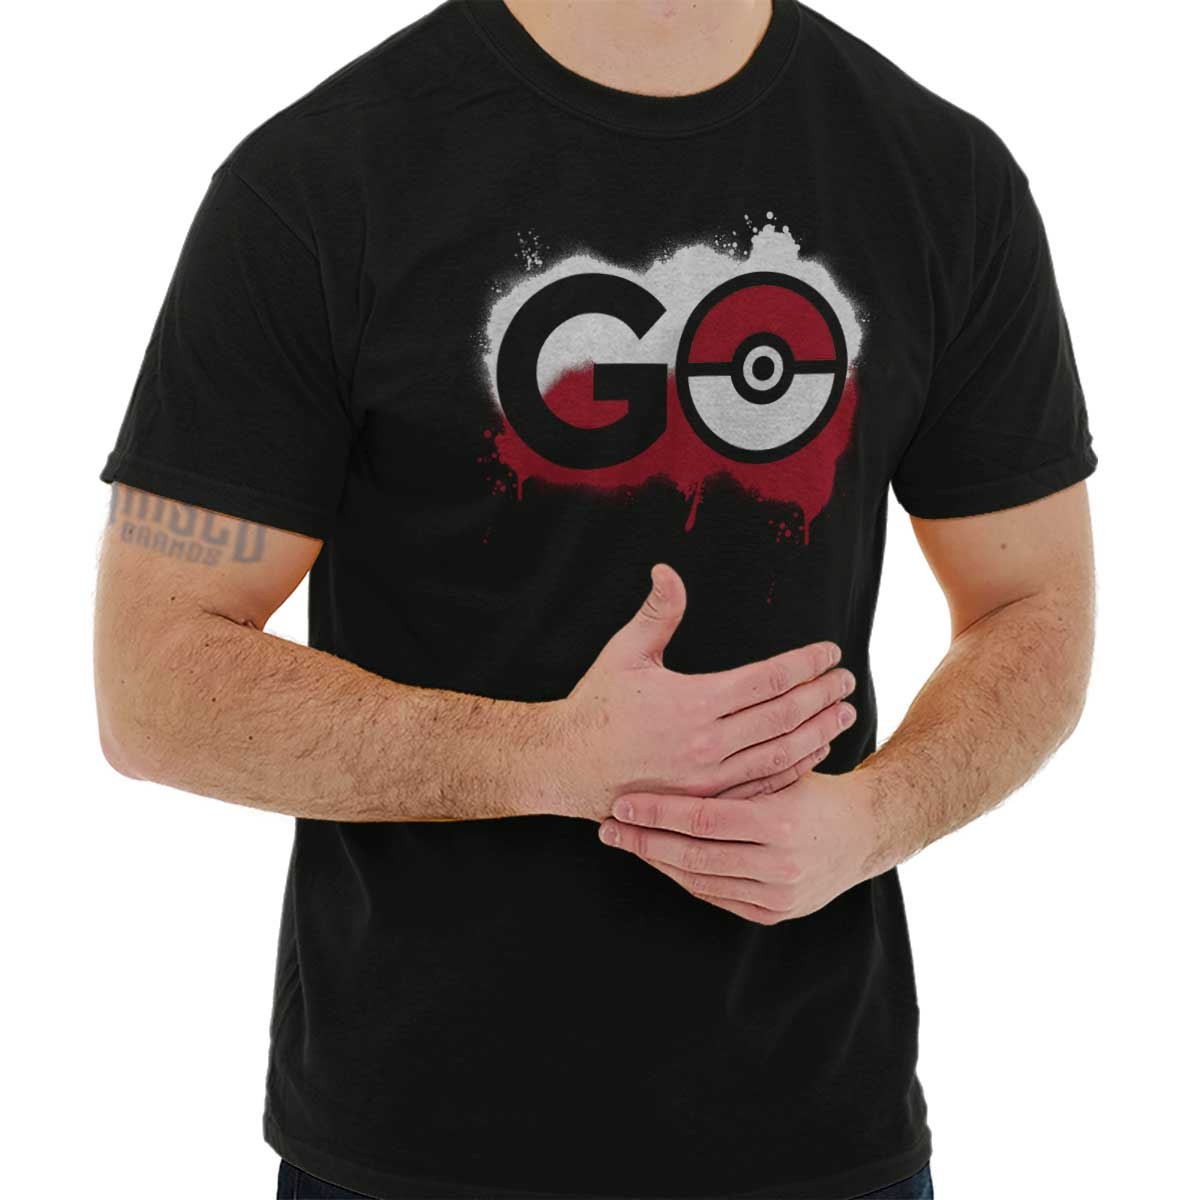 ab7ff524d Details about Pokemon Go Gamer Shirt Cute Cool Gift Idea Pokeball Pikachu  Classic T Shirt Tee